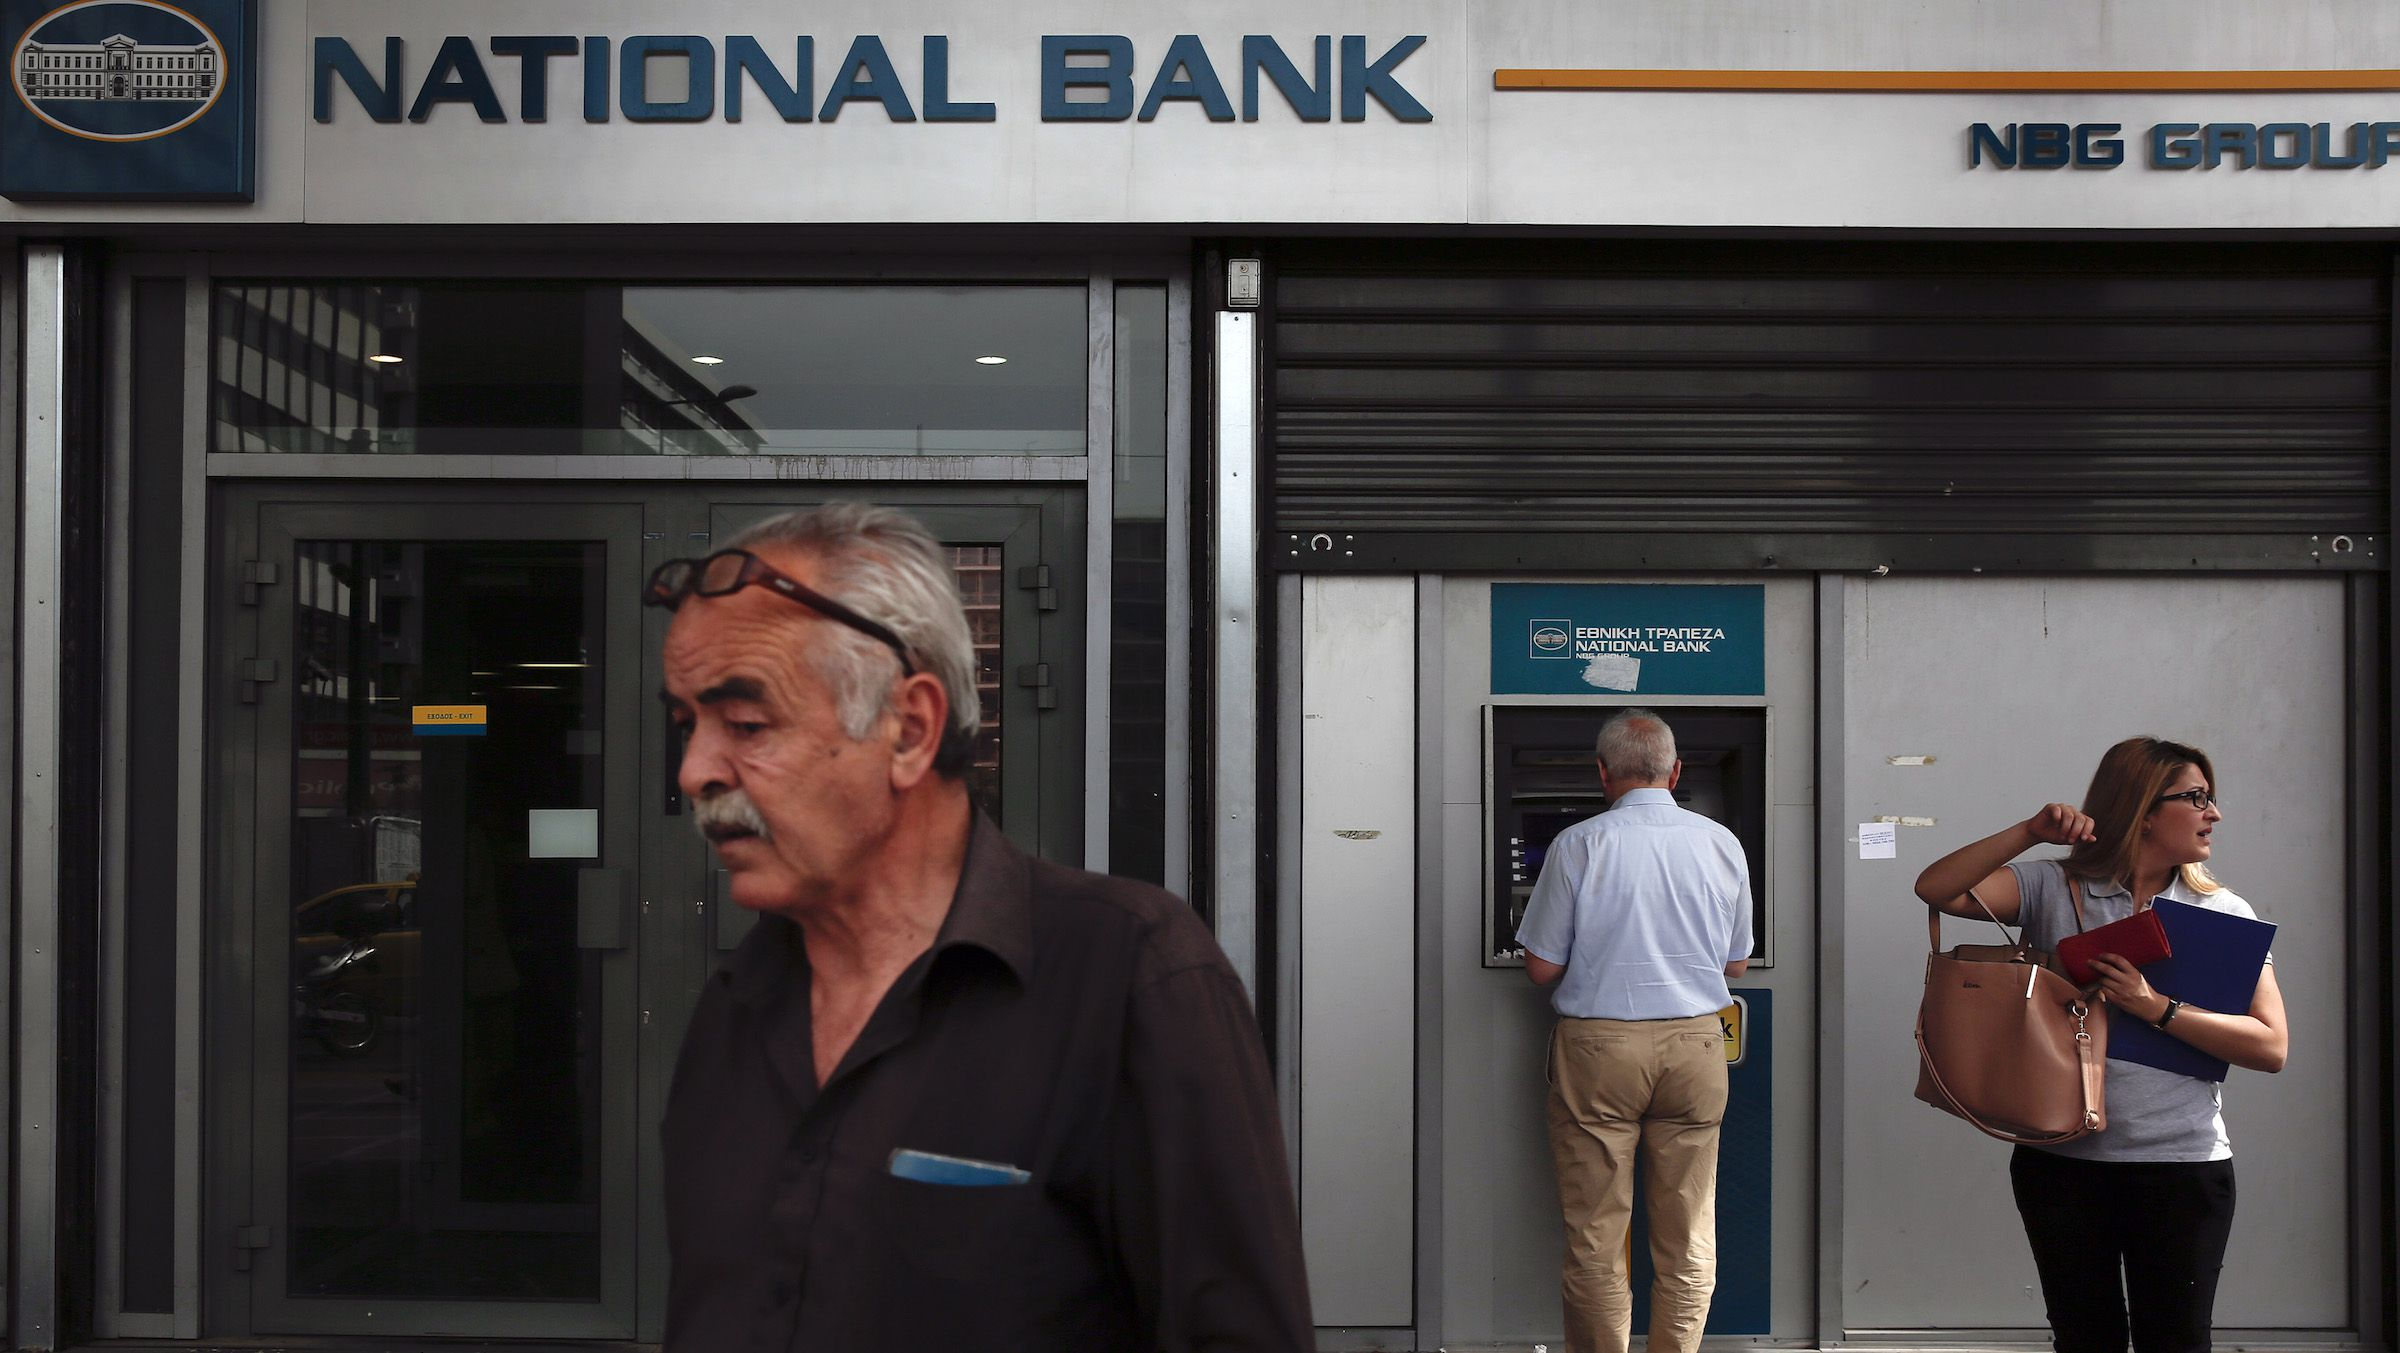 People are seen outside a National Bank branch in Athens